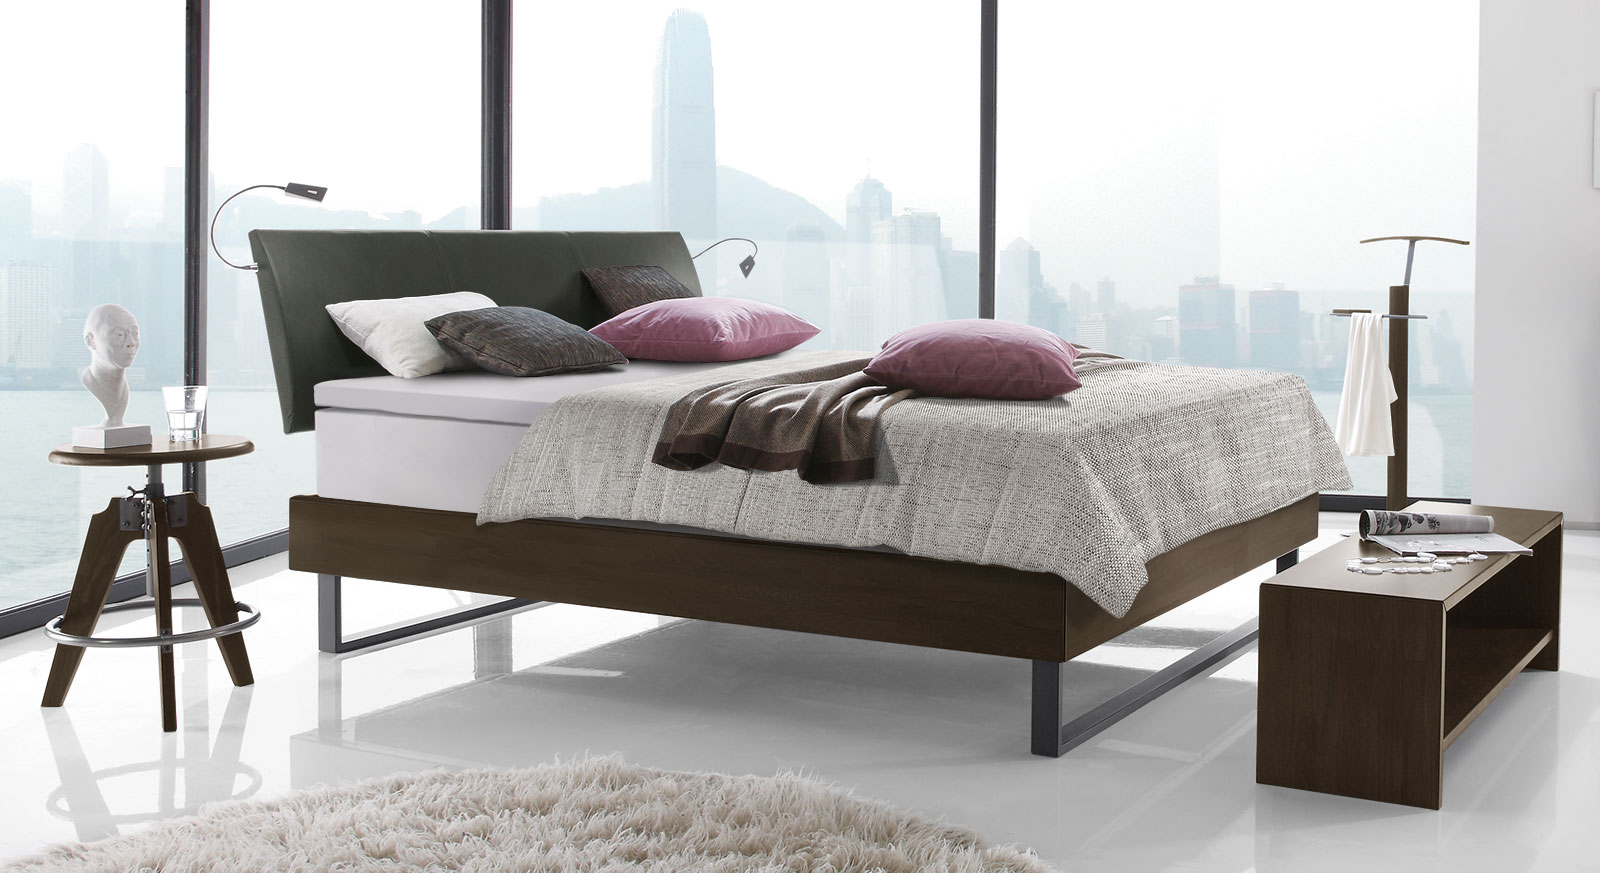 doppelbett aus buche mit boxspring ausstattung agia. Black Bedroom Furniture Sets. Home Design Ideas